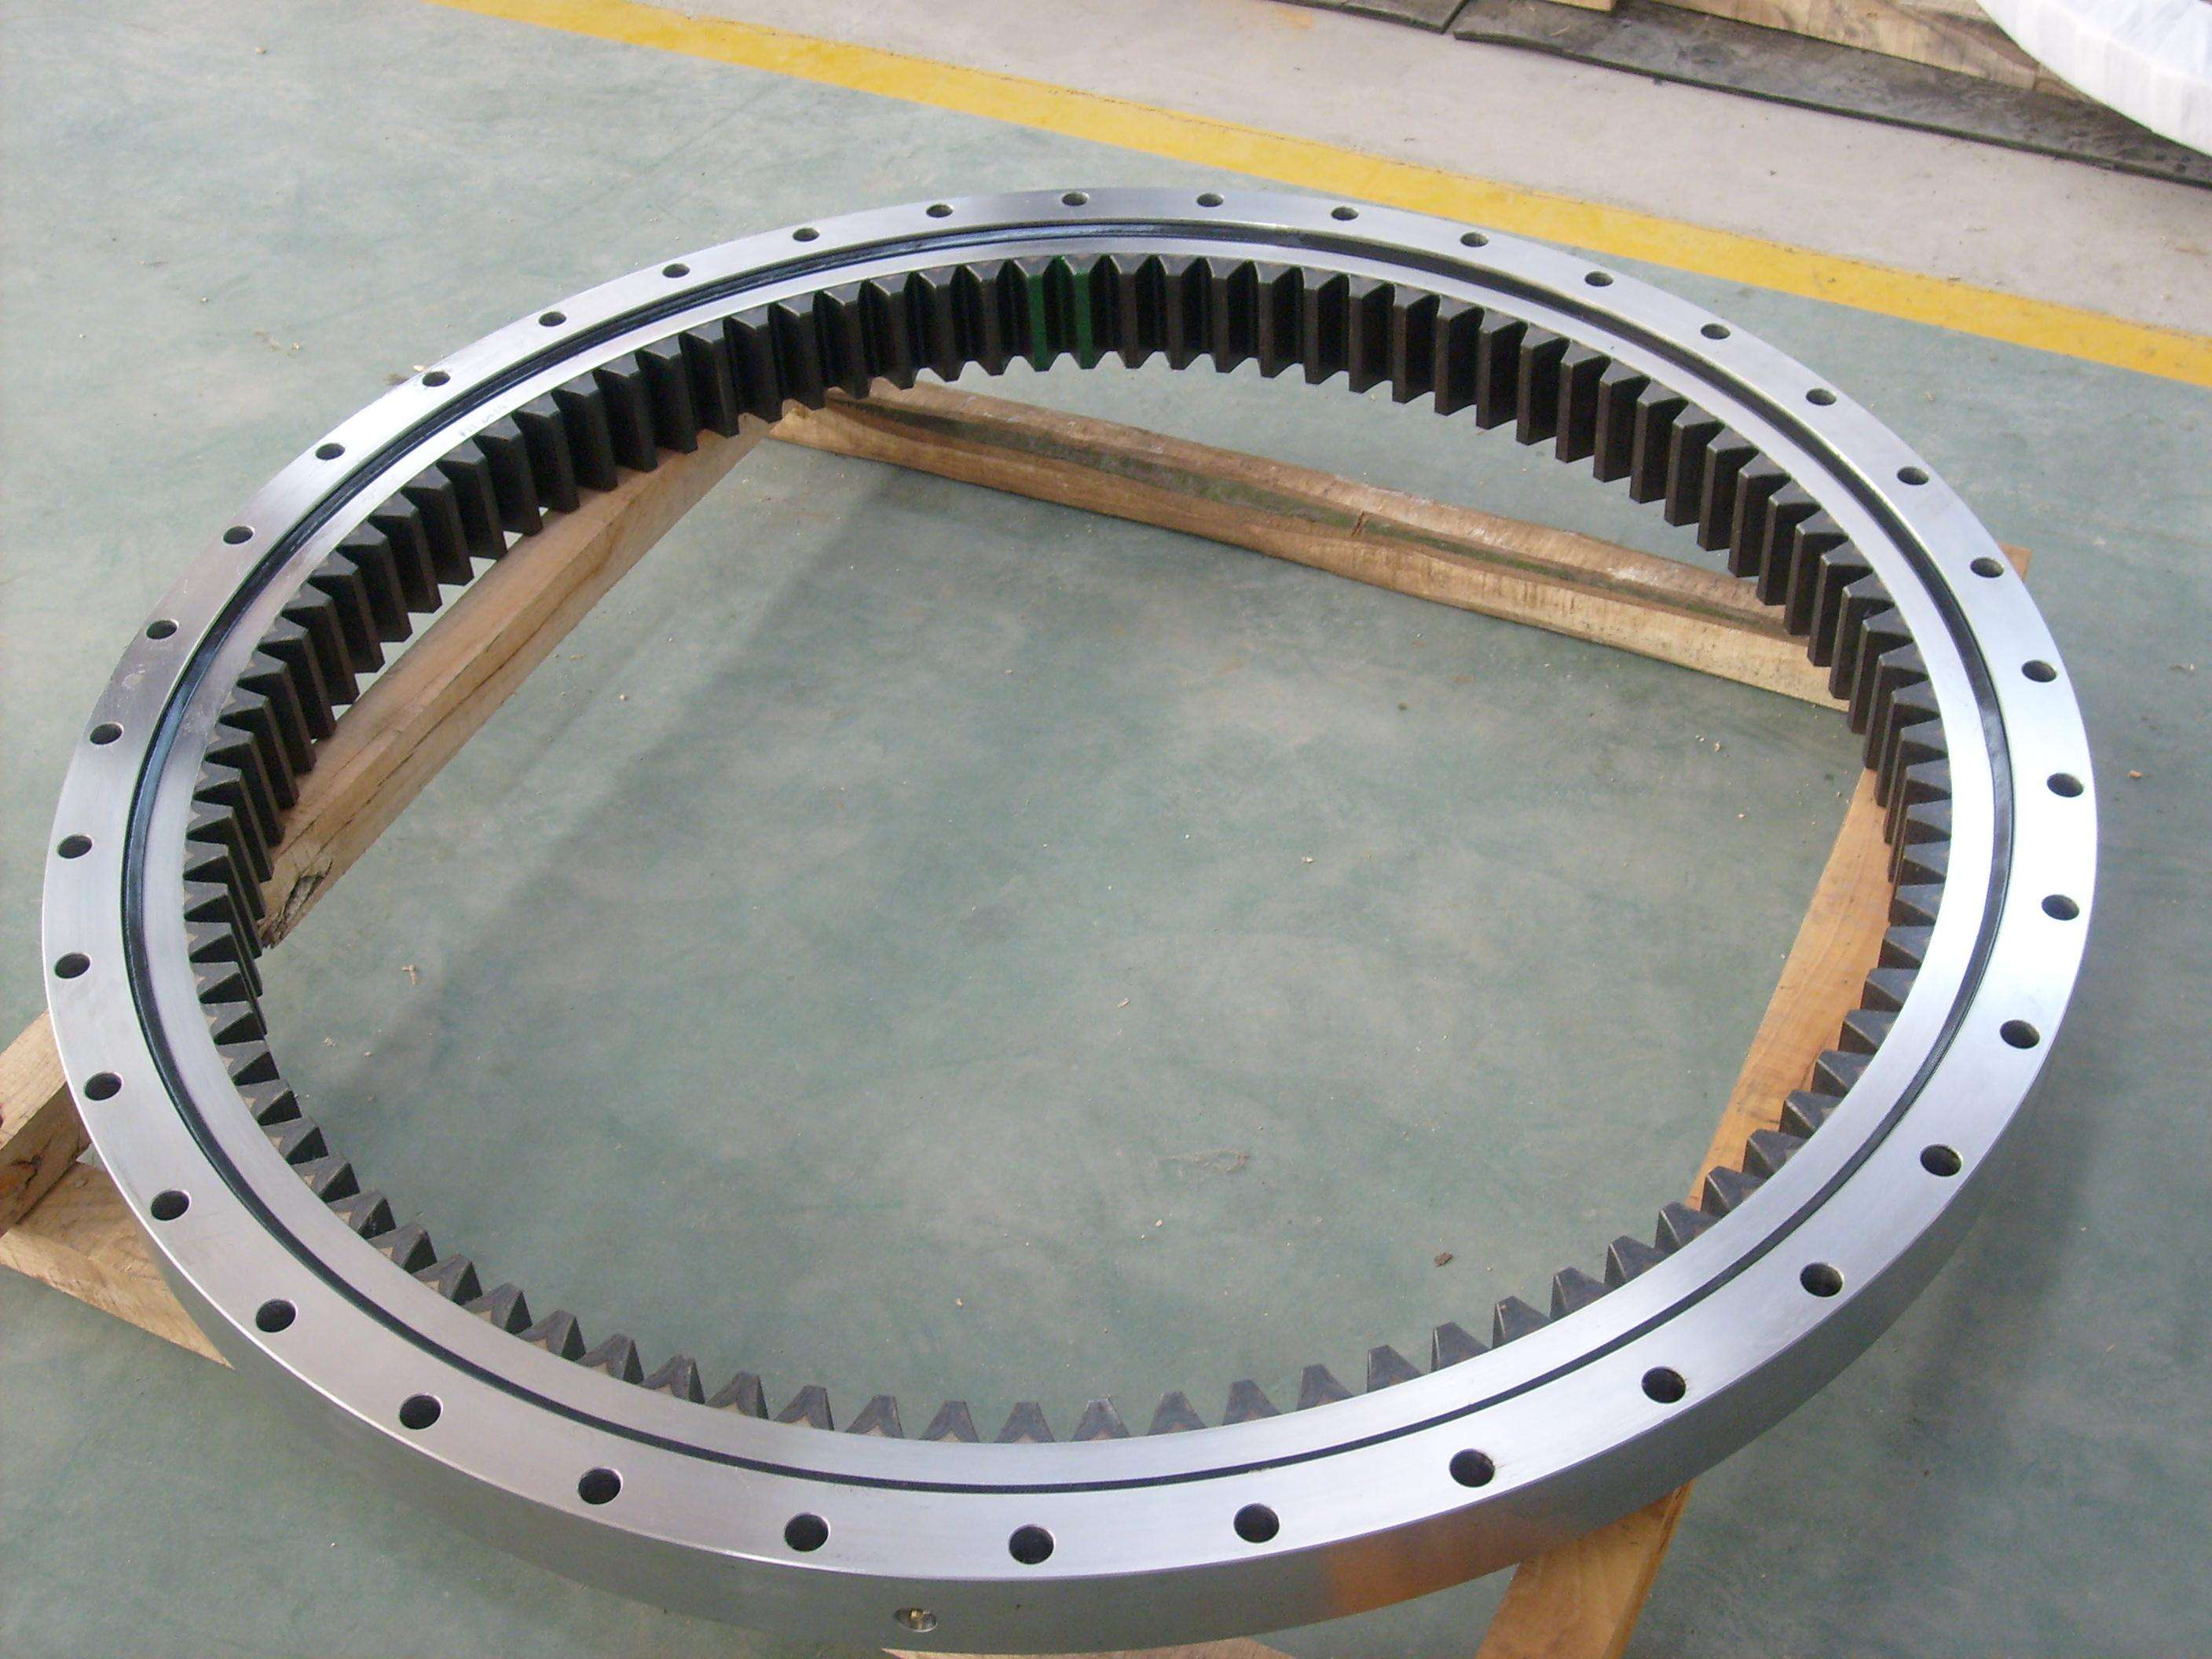 Komatsu PC55 slewing bearing manufacturer, 50Mn slewing ring